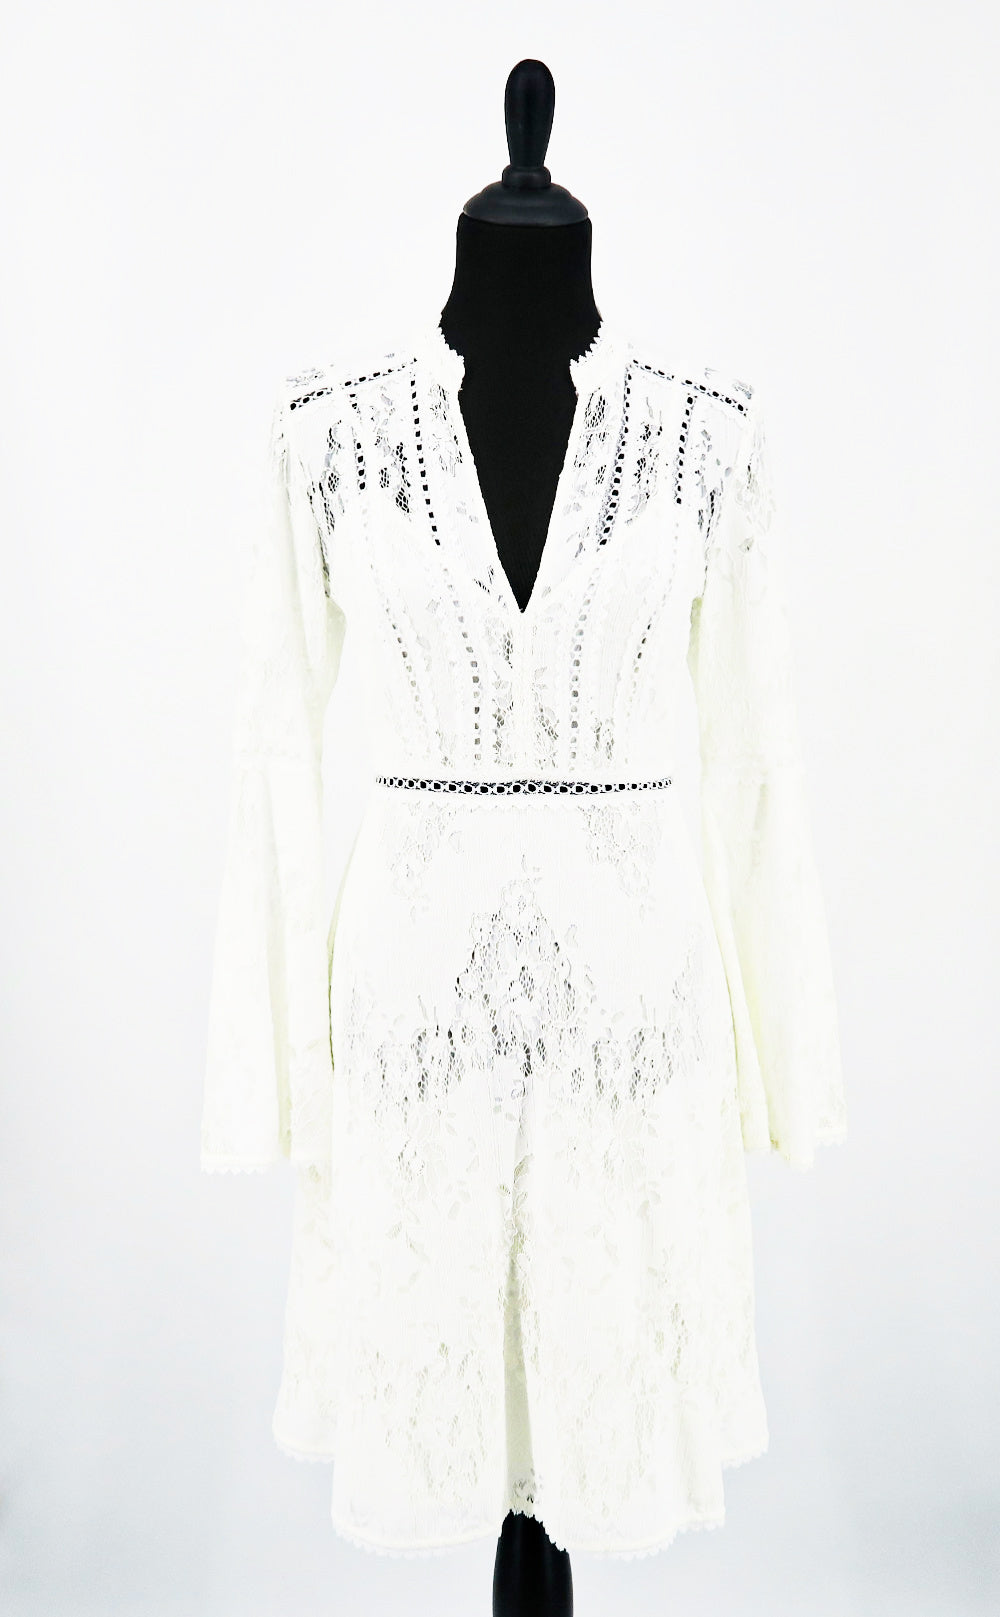 BCBG Lacey Long Sleeve Dress - Sachy's Closet